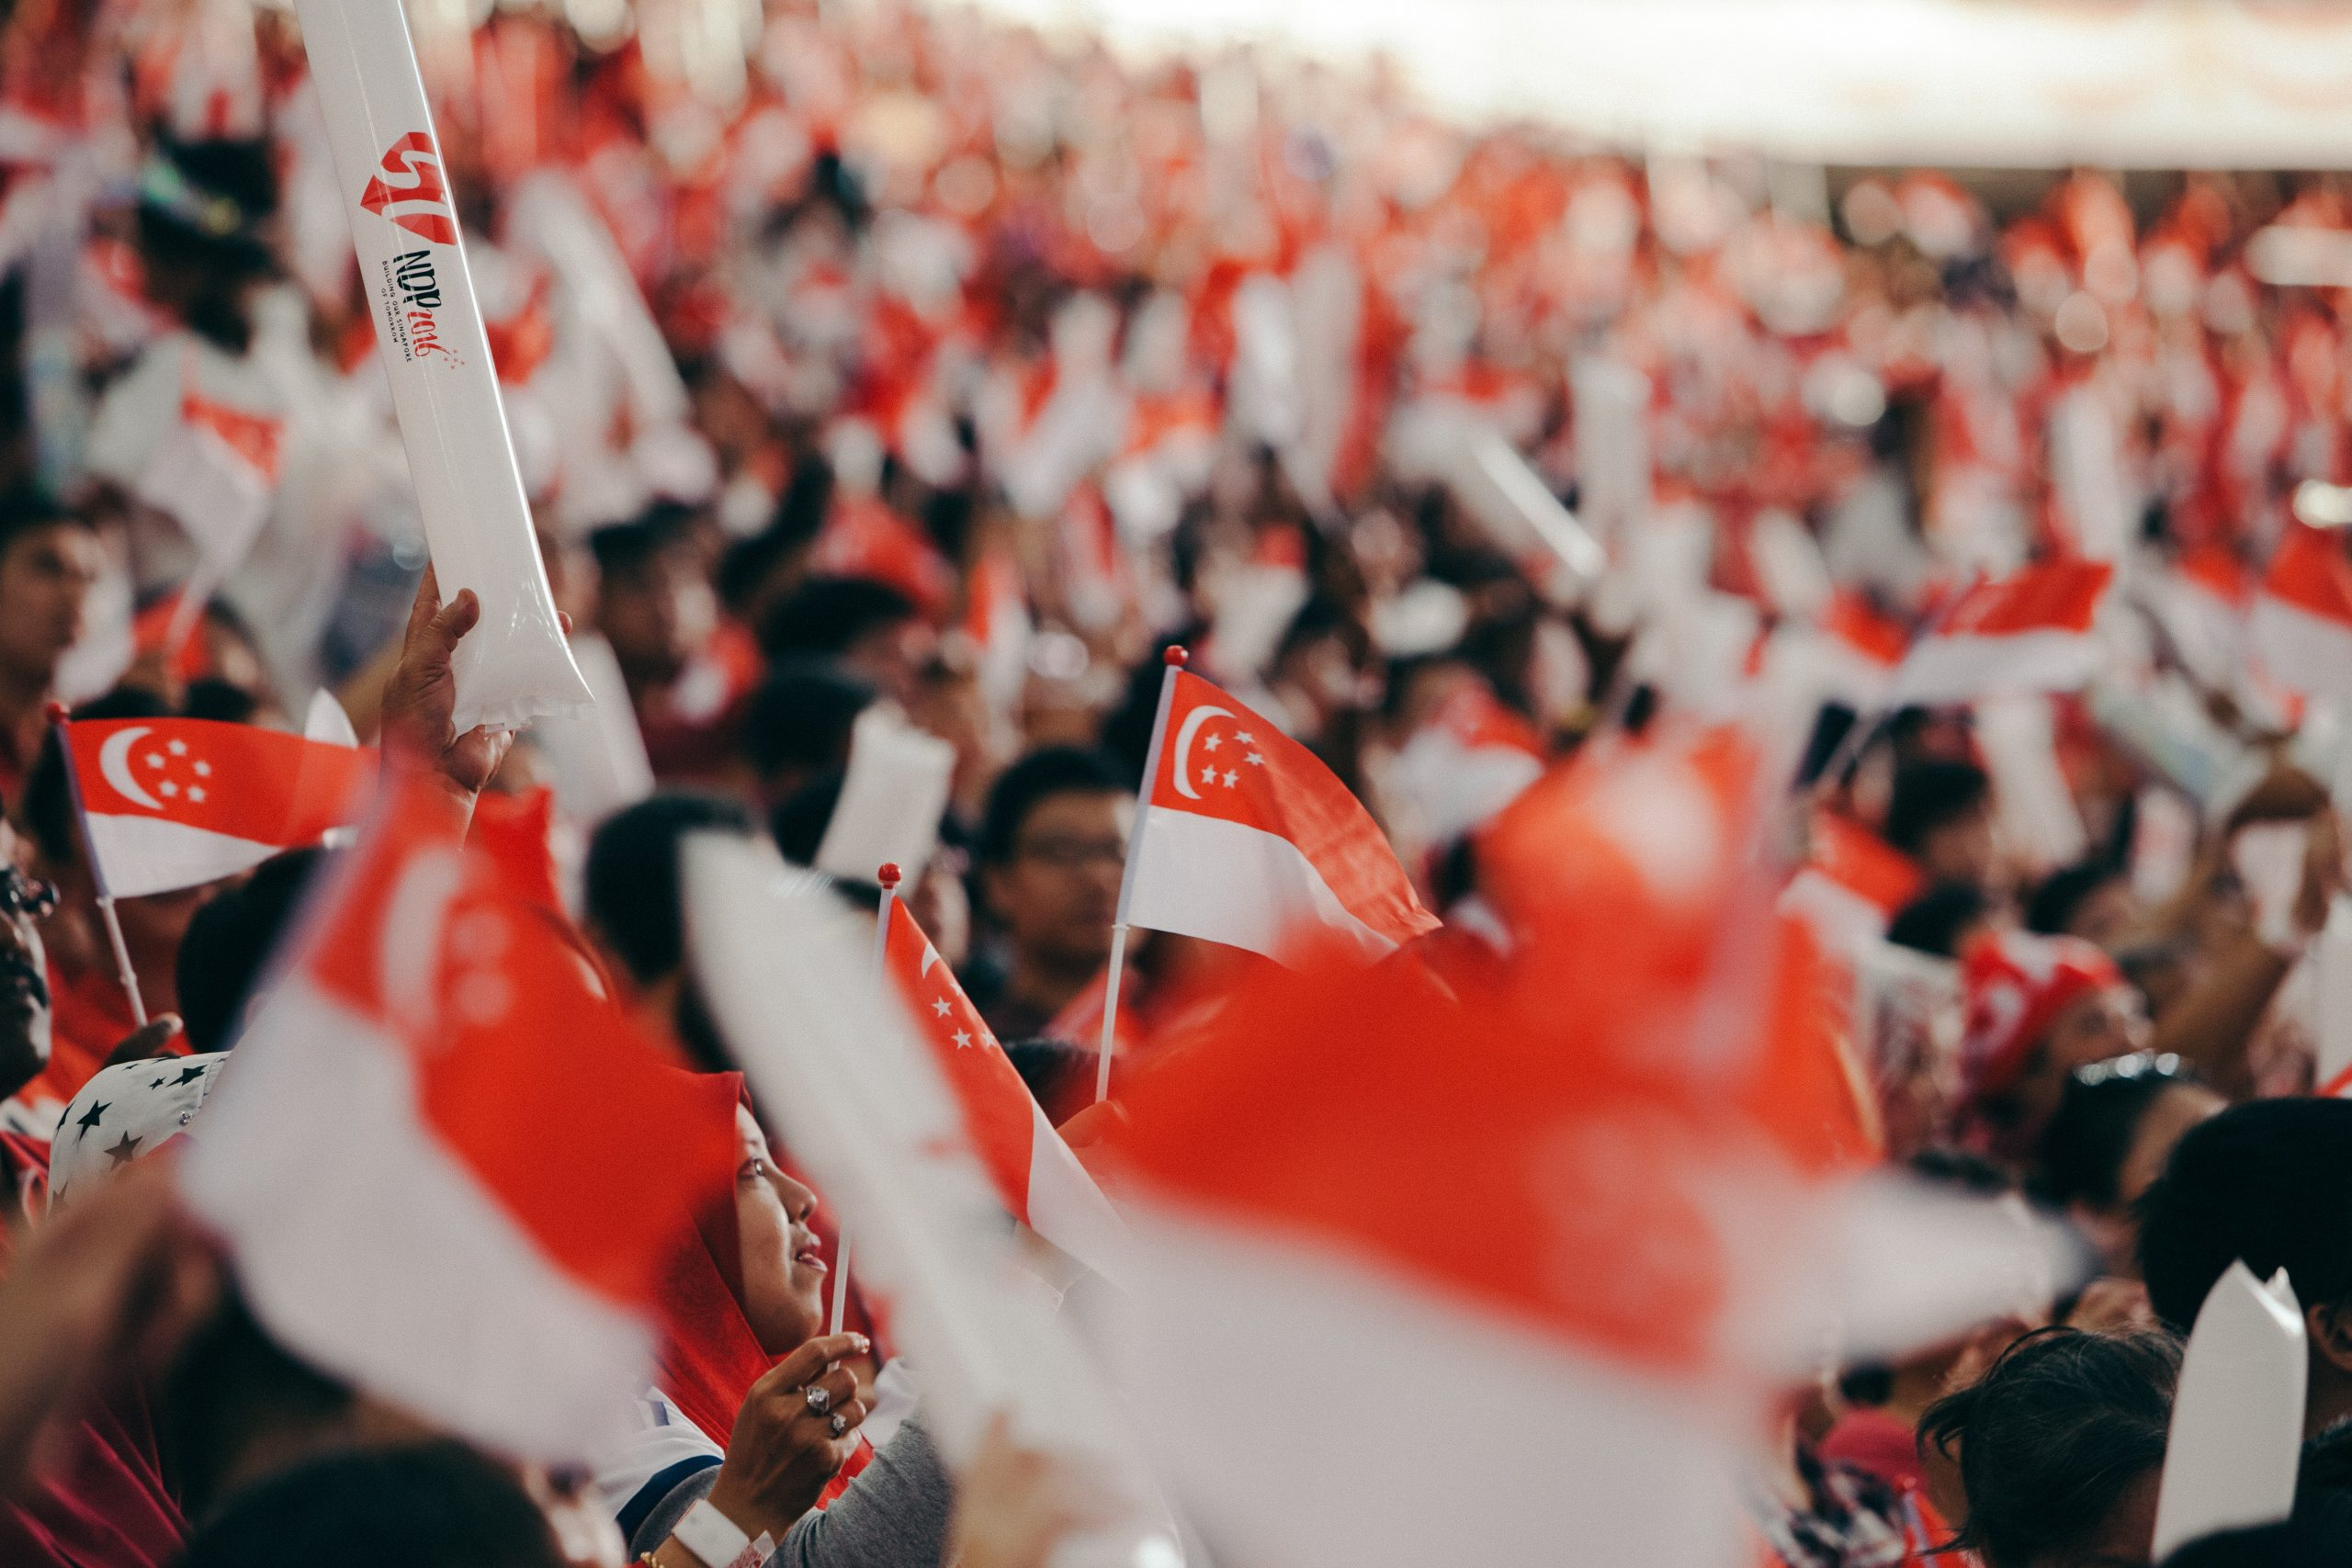 Let's Talk About the History of Xenophobia in Singapore